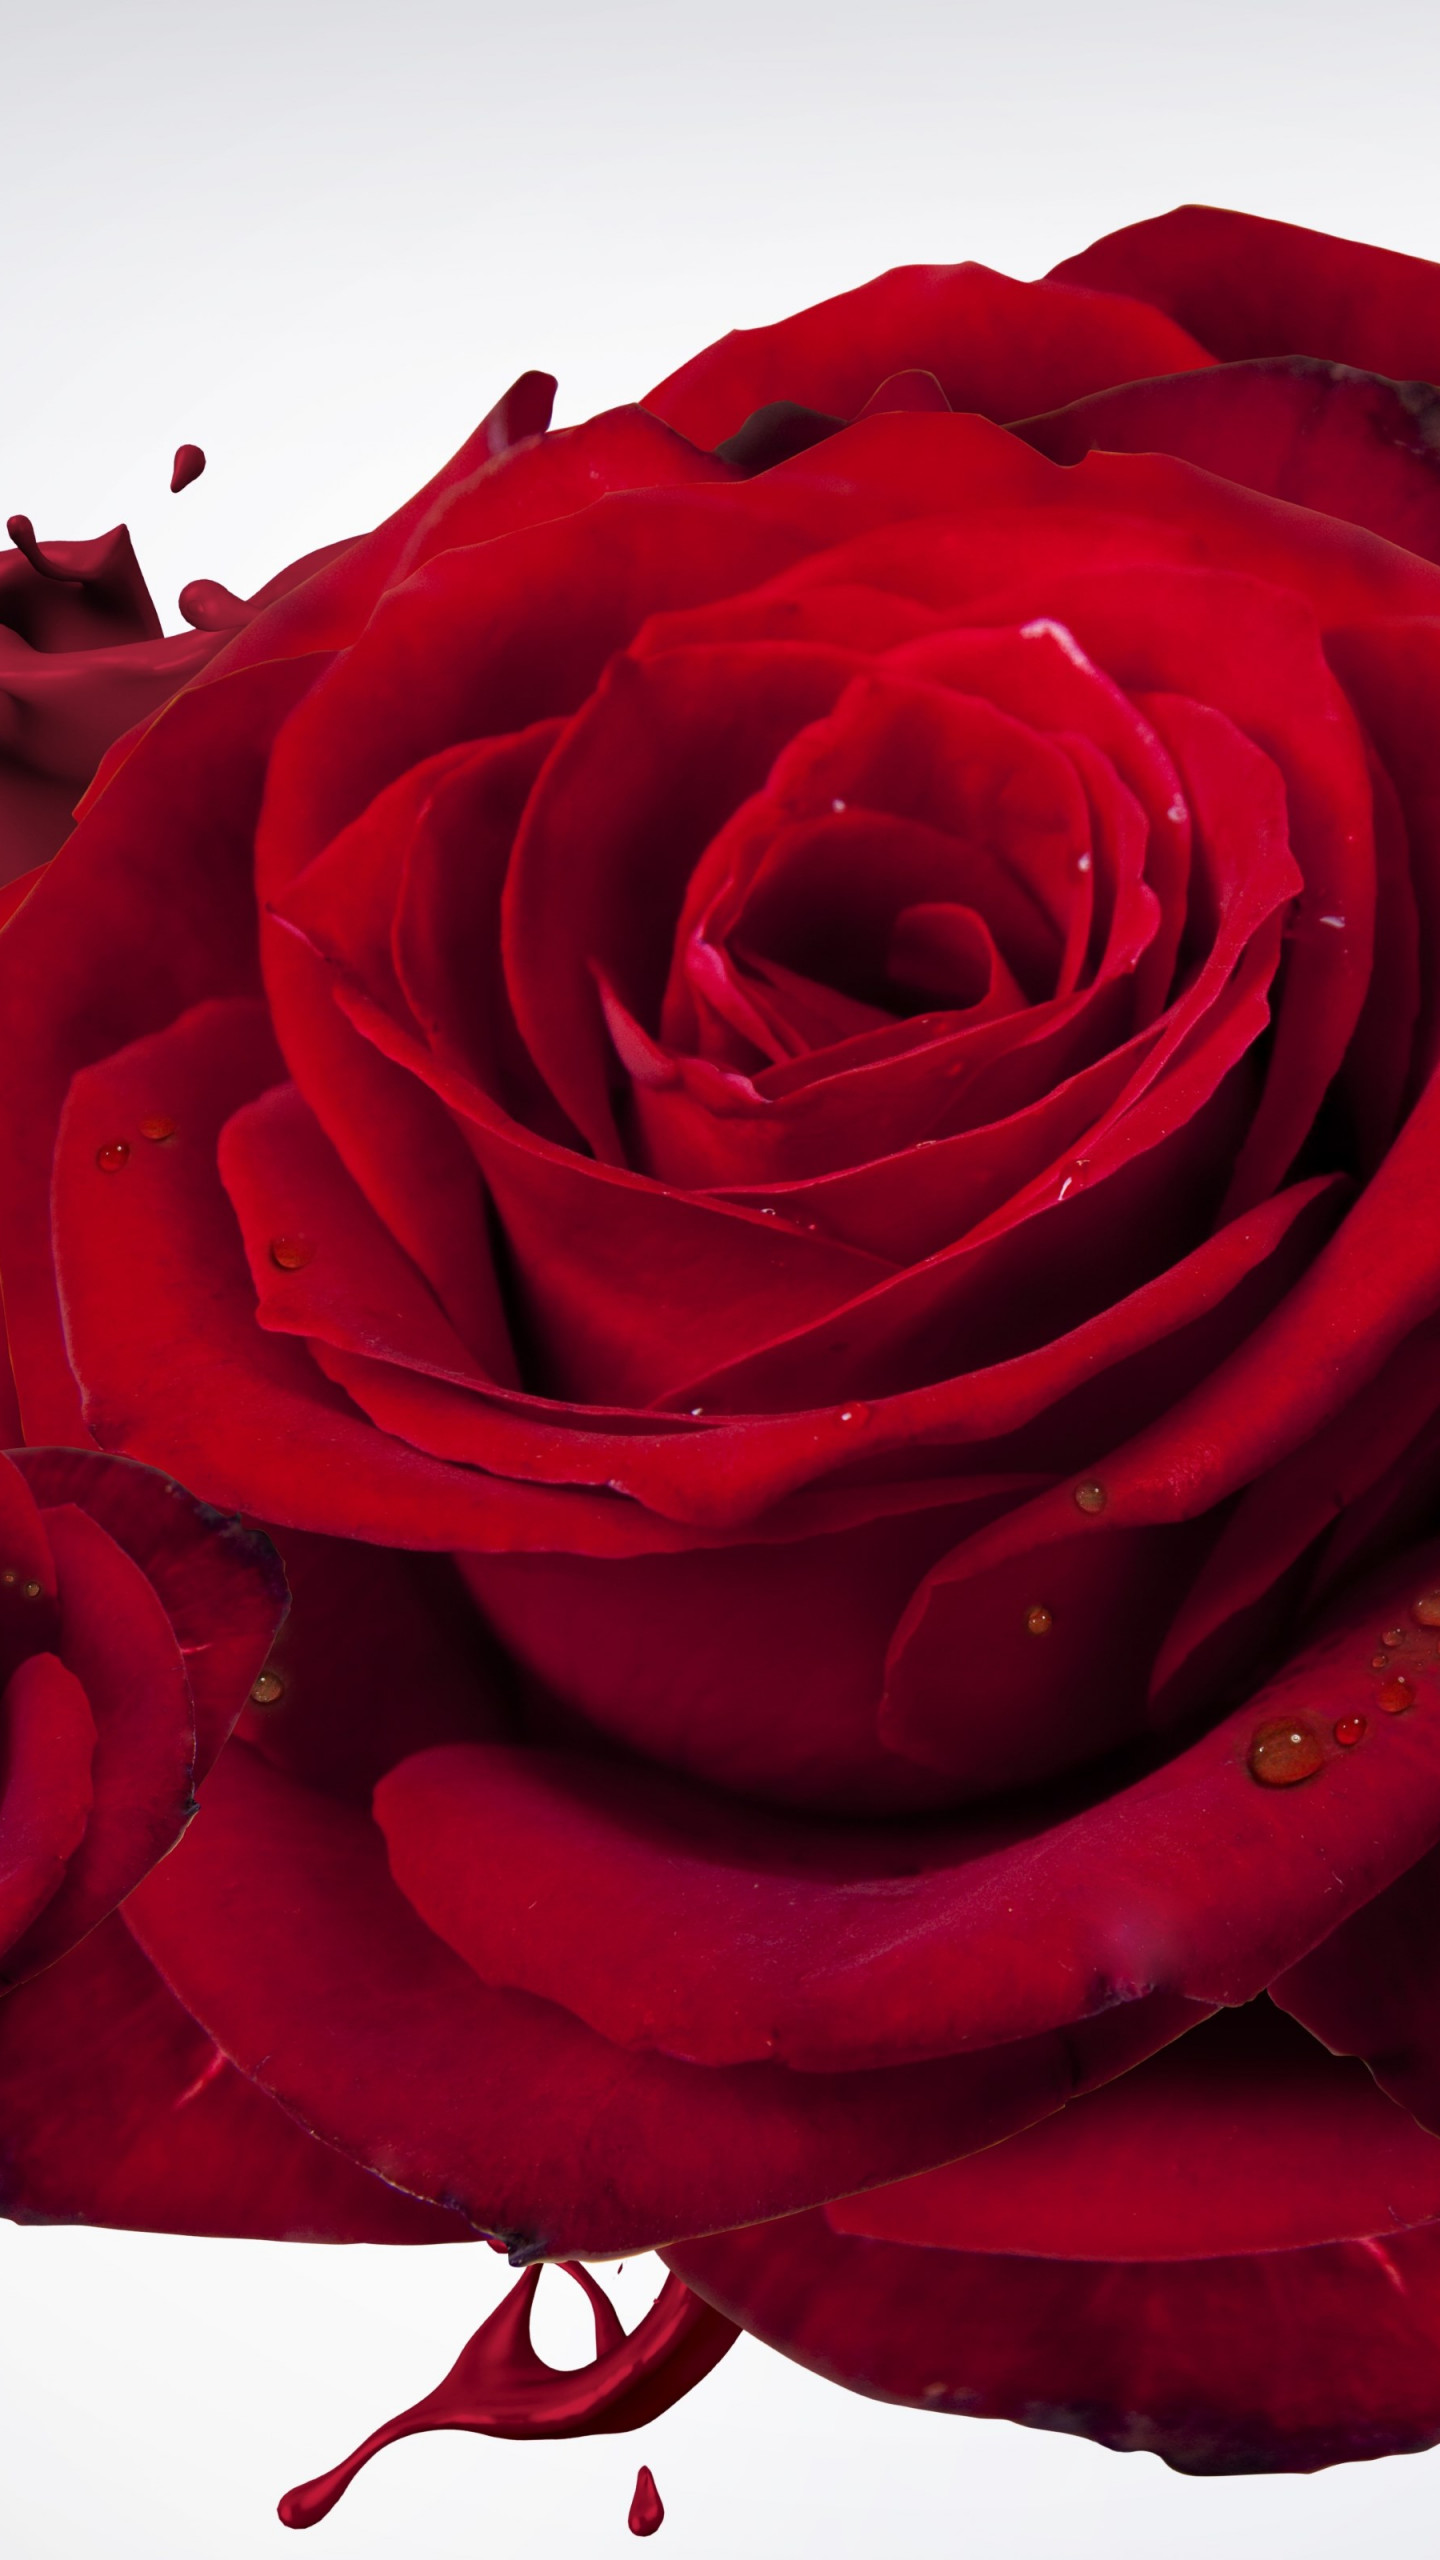 Vertical Wallpaper Hd Download Wallpaper The Most Beautiful Red Roses 1440x2560